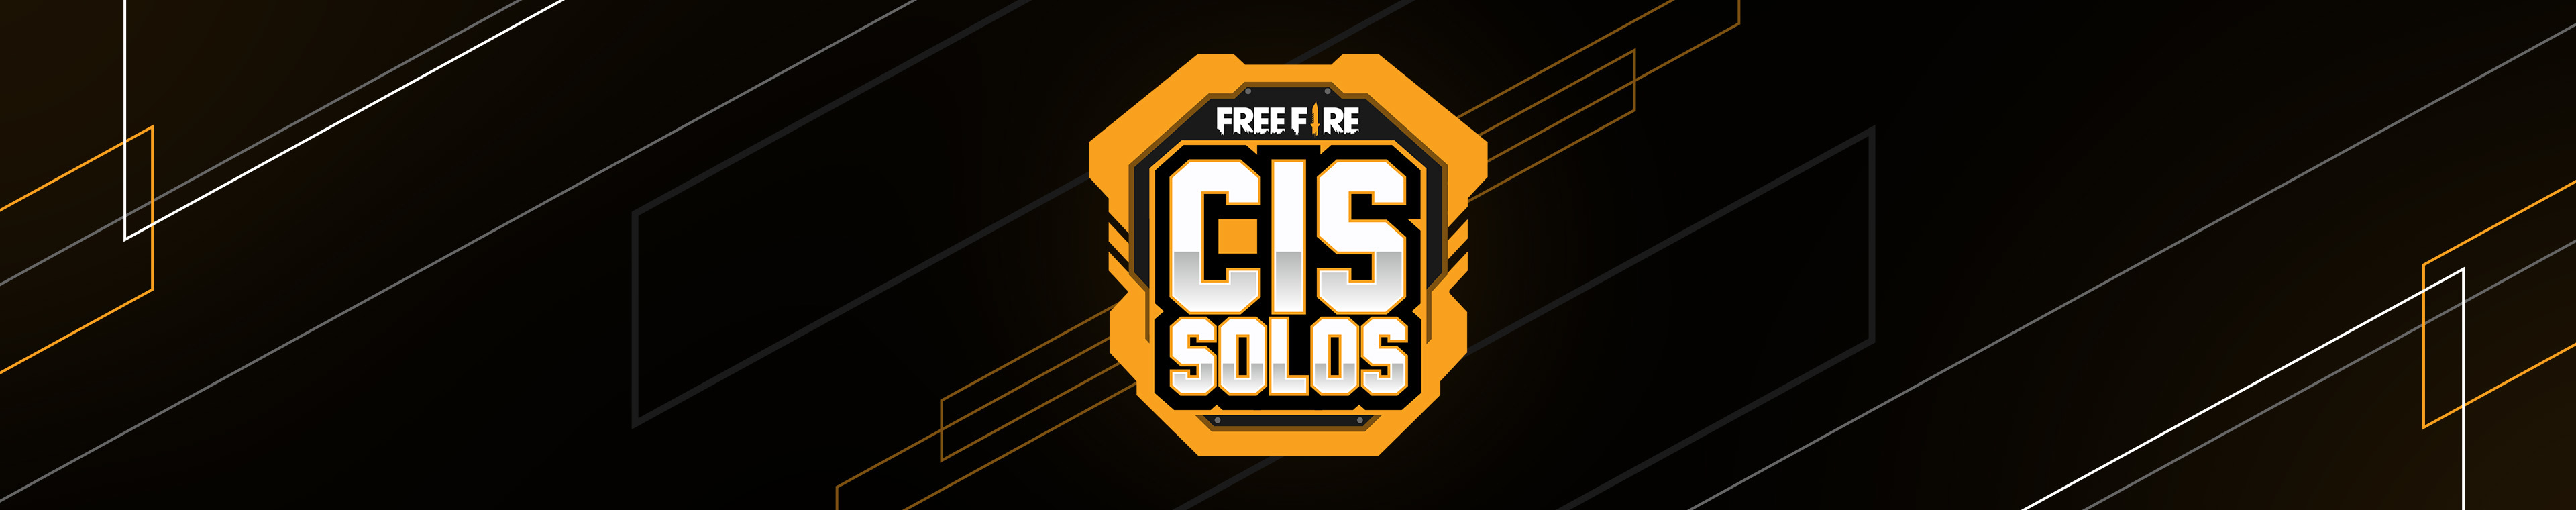 Free Fire CIS Solos